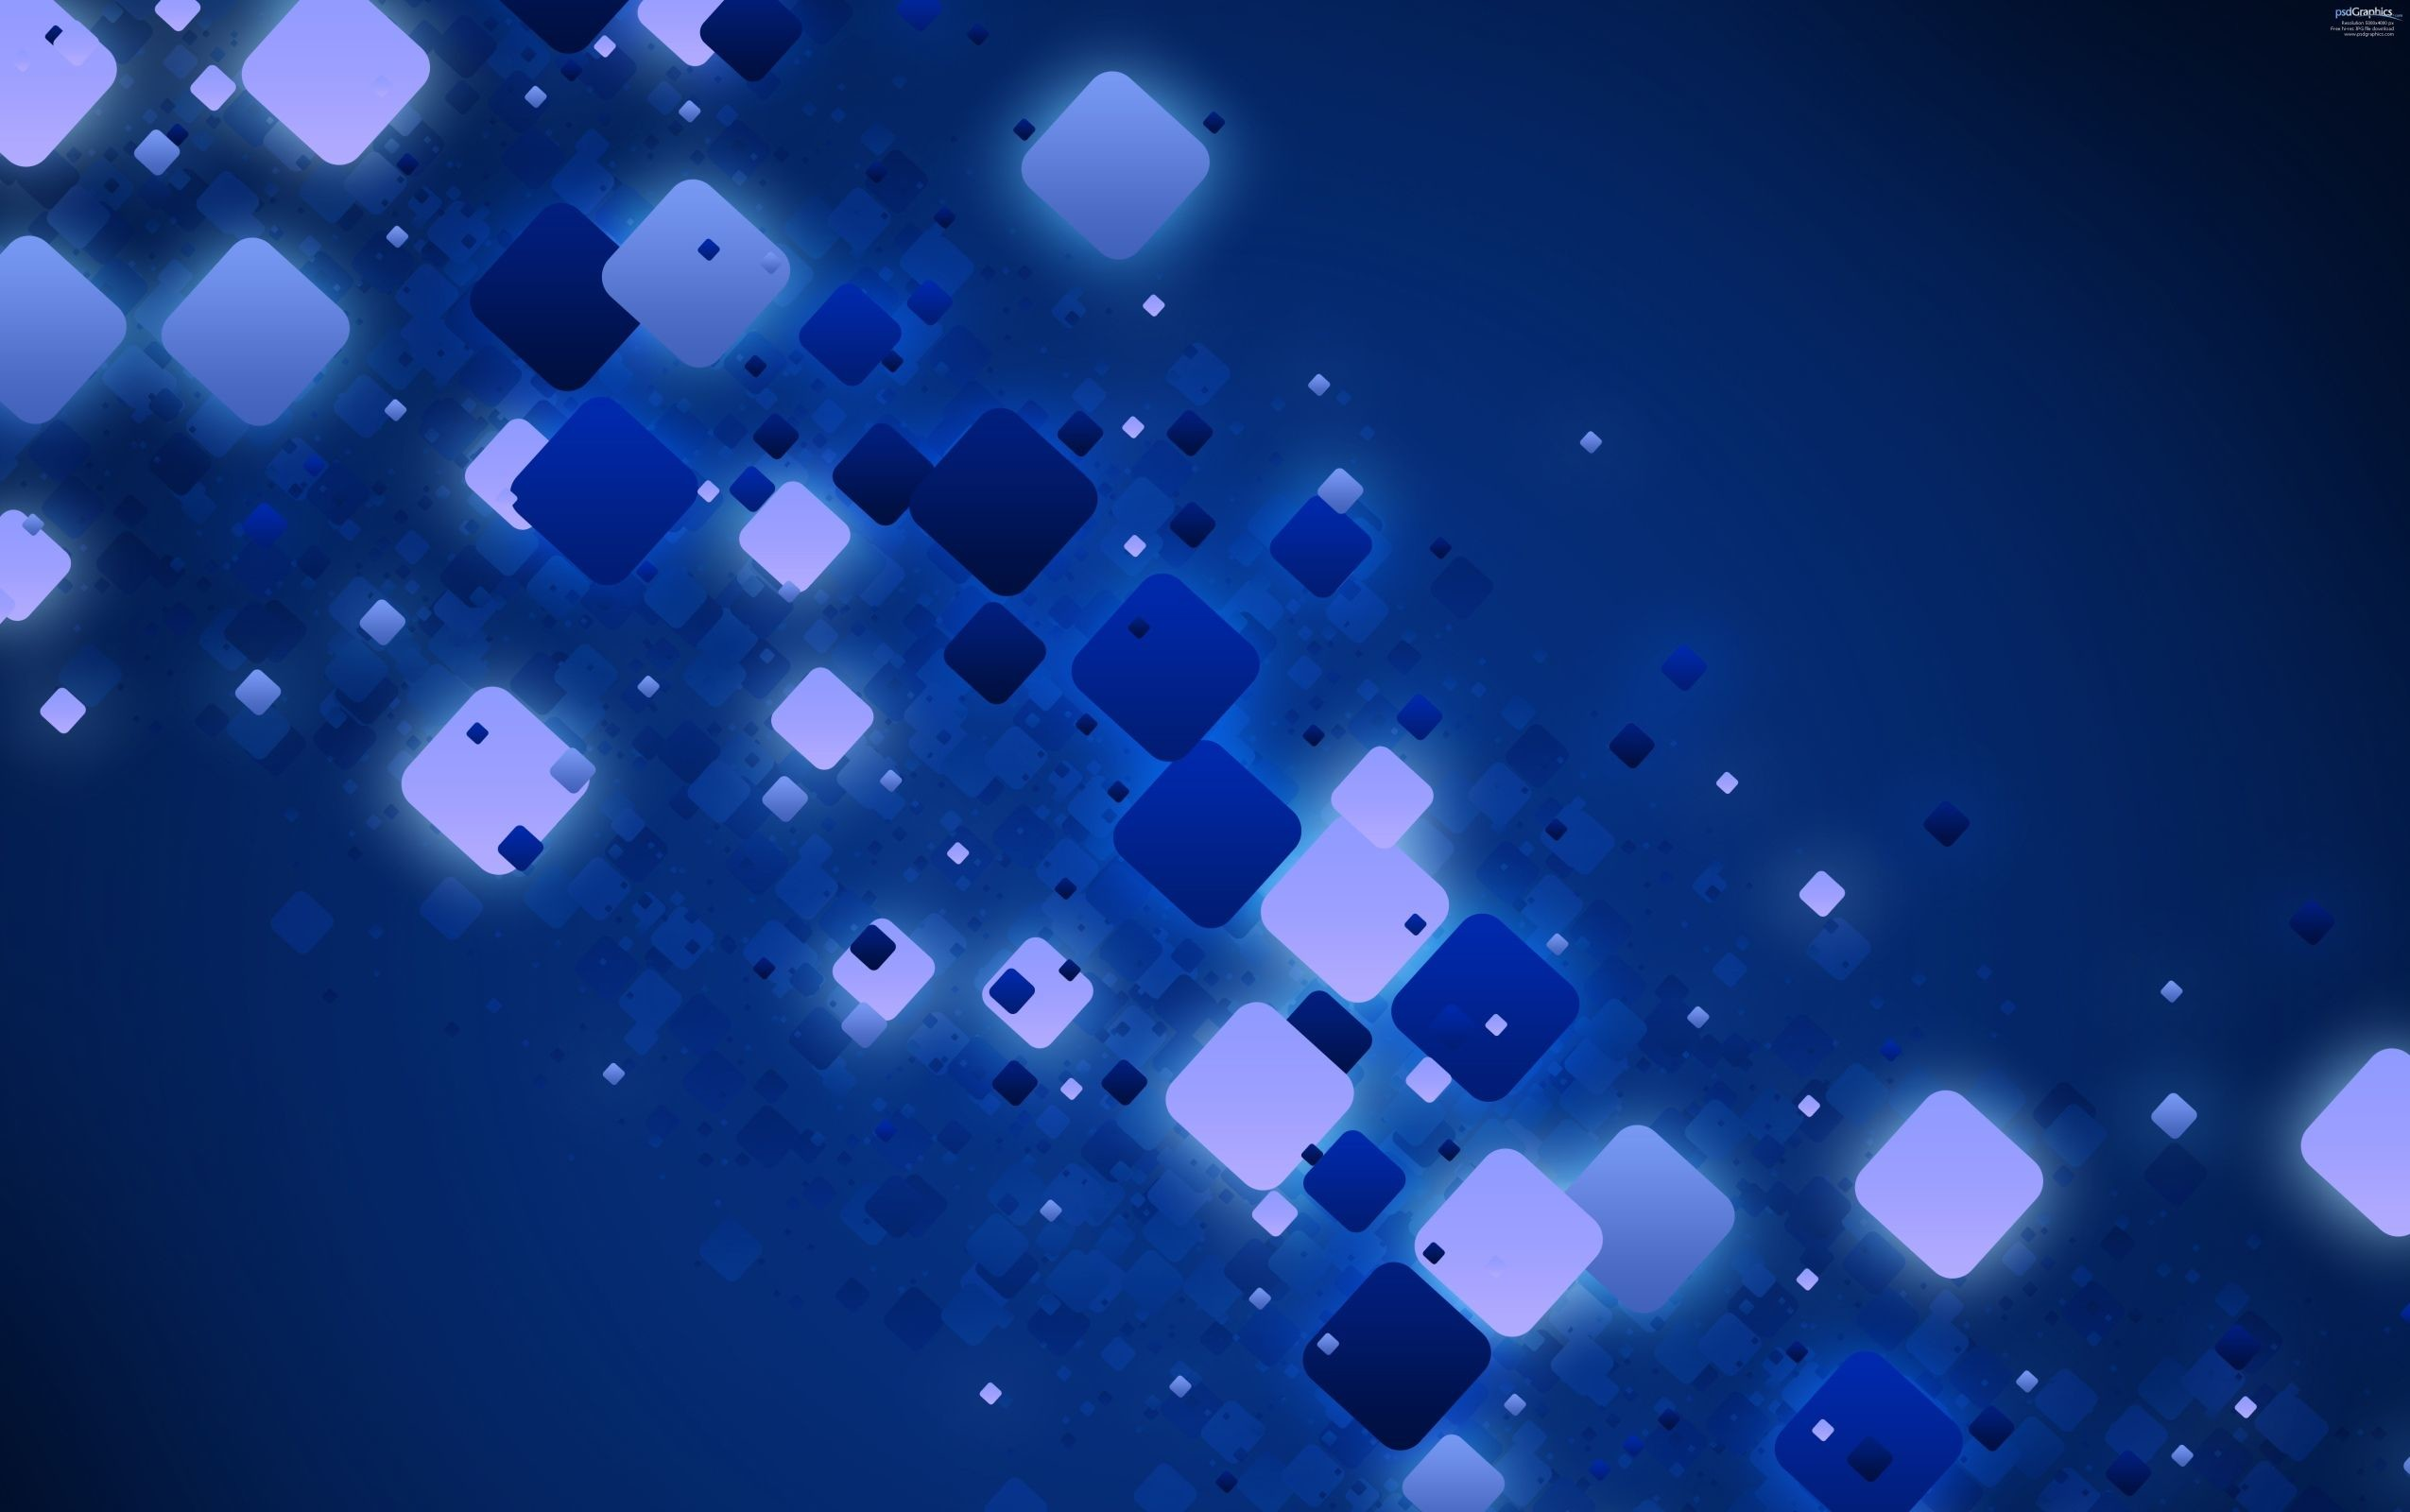 2550x1600 Blue Abstract Light 3D Background